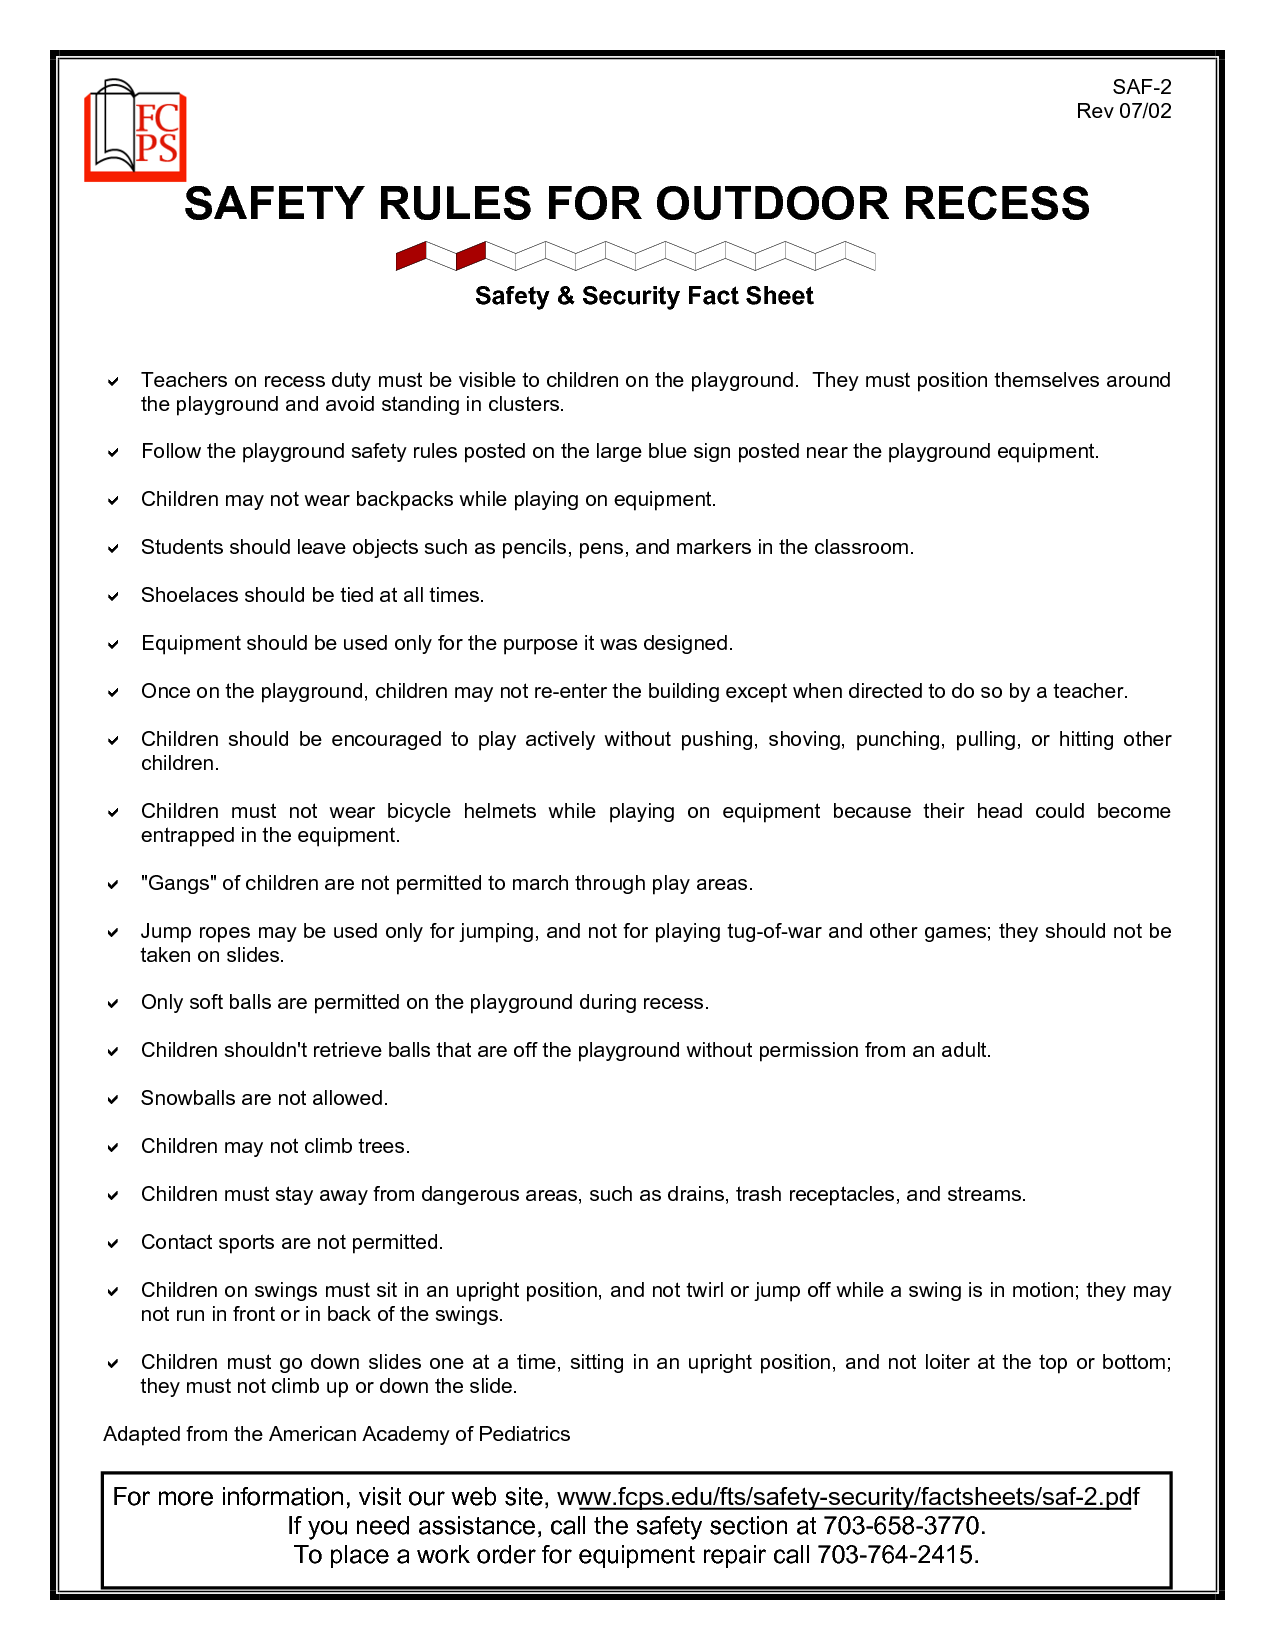 Outdoor Safety For Preschoolers Safety Rules For Outdoor Recess Places To Visit Pinterest